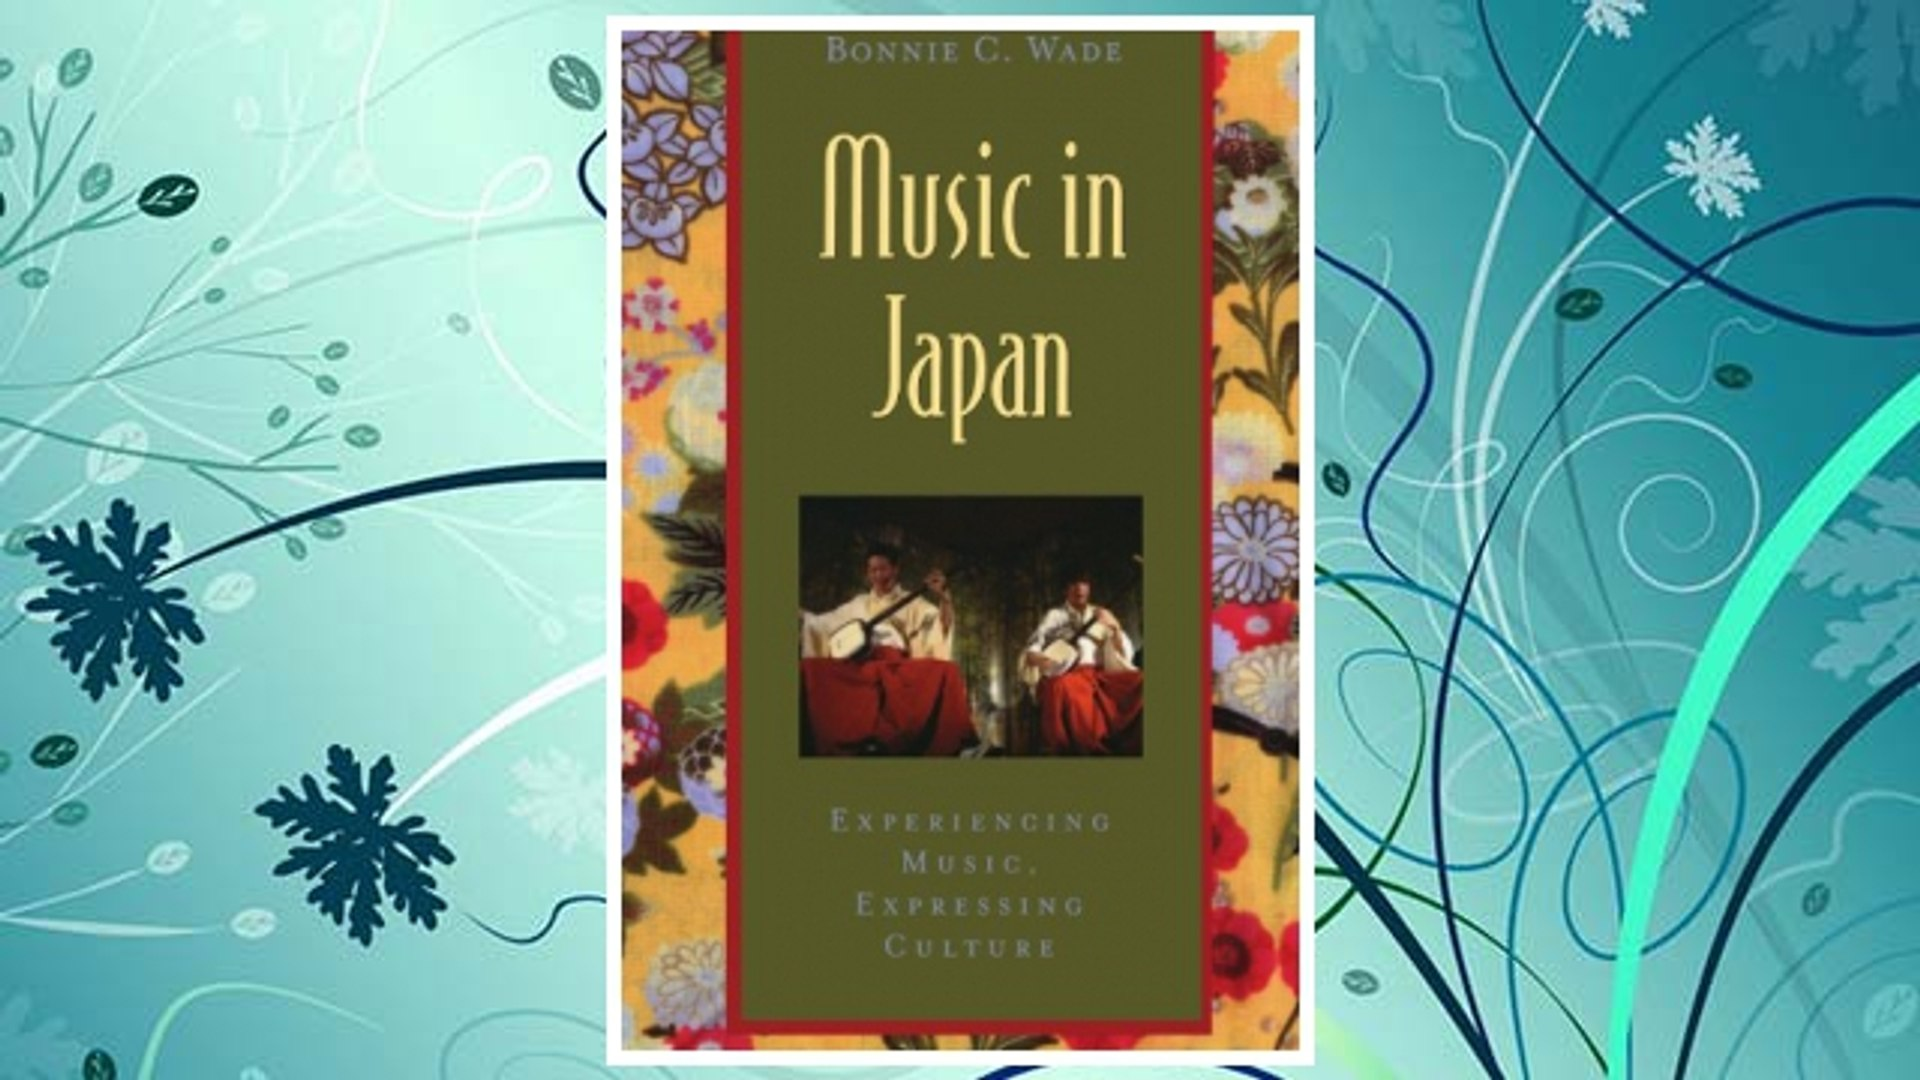 Download PDF Music in Japan: Experiencing Music, Expressing Culture (Global Music Series) FREE